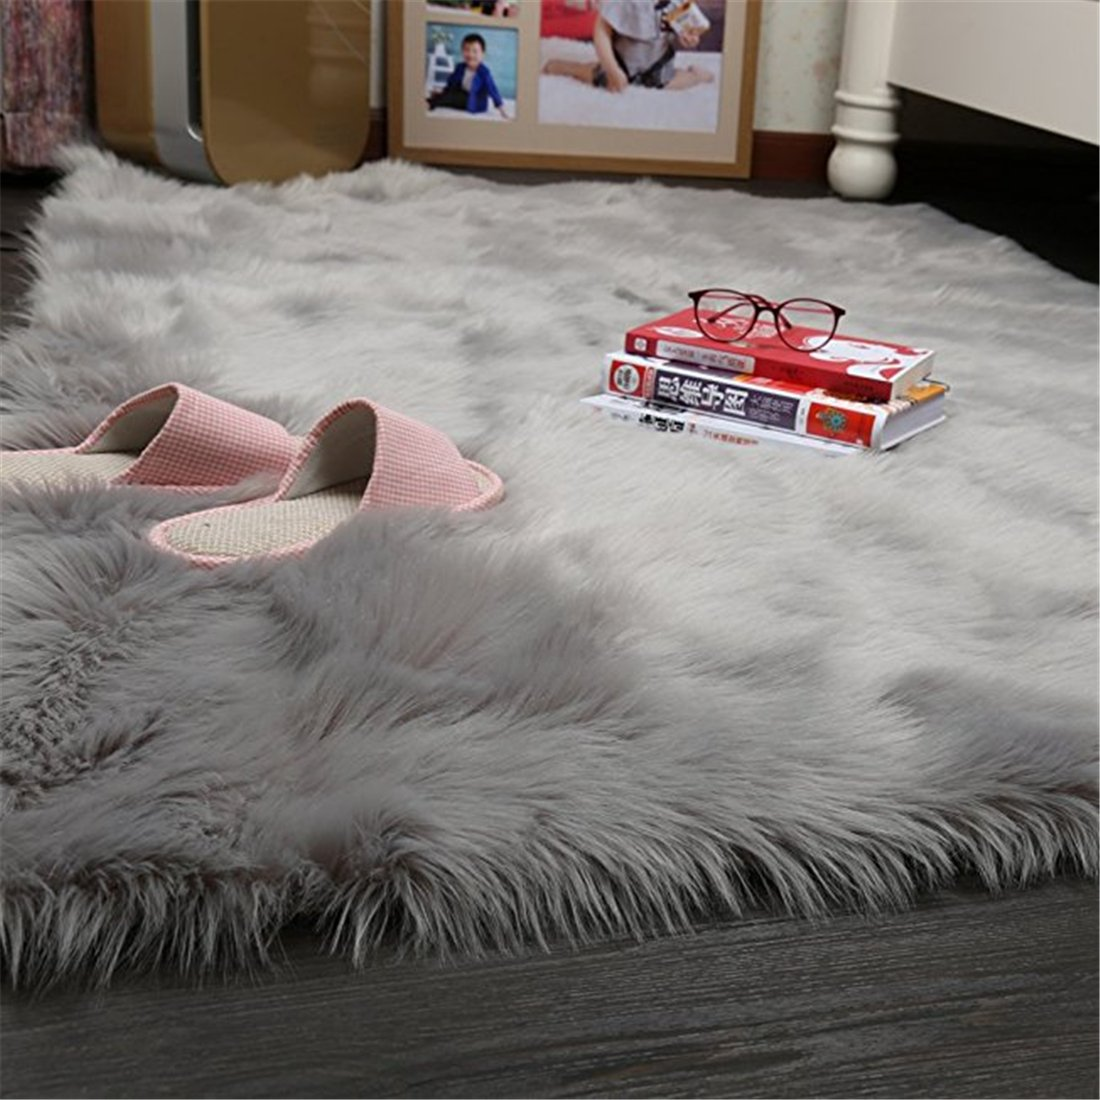 Super Soft Faux Fur Fake Sheepskin Sofa Couch Stool Casper Vanity Chair Cover Rug / Solid Shaggy Area Rugs For Living Bedroom Floor